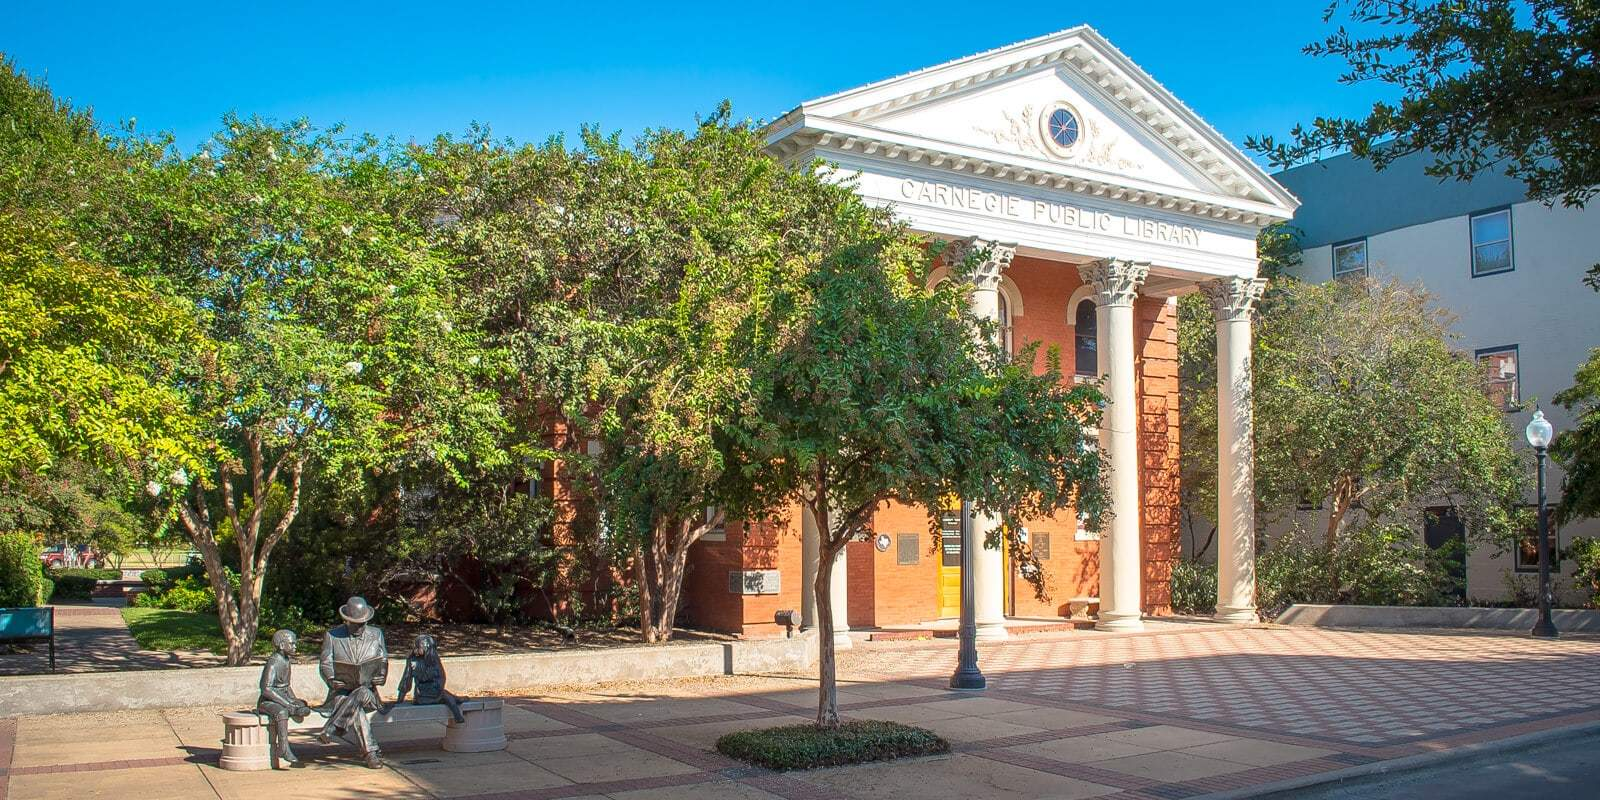 Carnegie Public Library tall building with white columns in Bryan